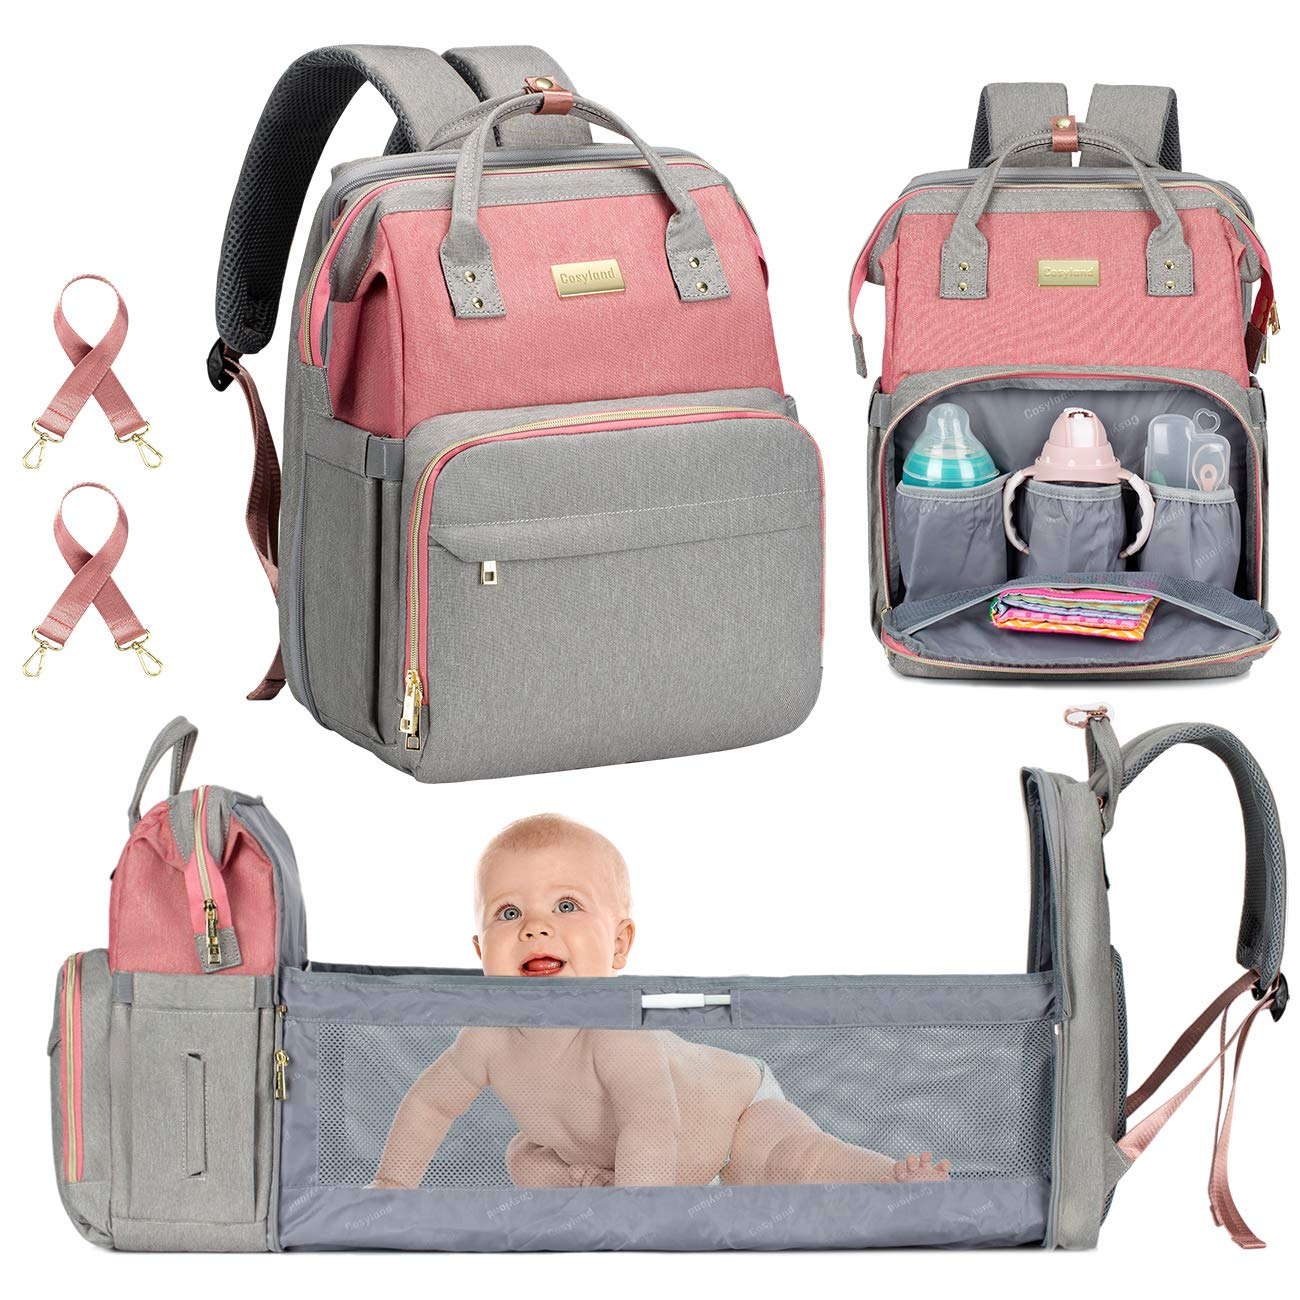 Diaper Bag Backpack with Bassinet Foldable Bed, COSYLAND Travel Changing Station, Mom Nappy Maternity Bag with Stroller Straps, Large Capacity for Dad Mom Girls, Pink Grey